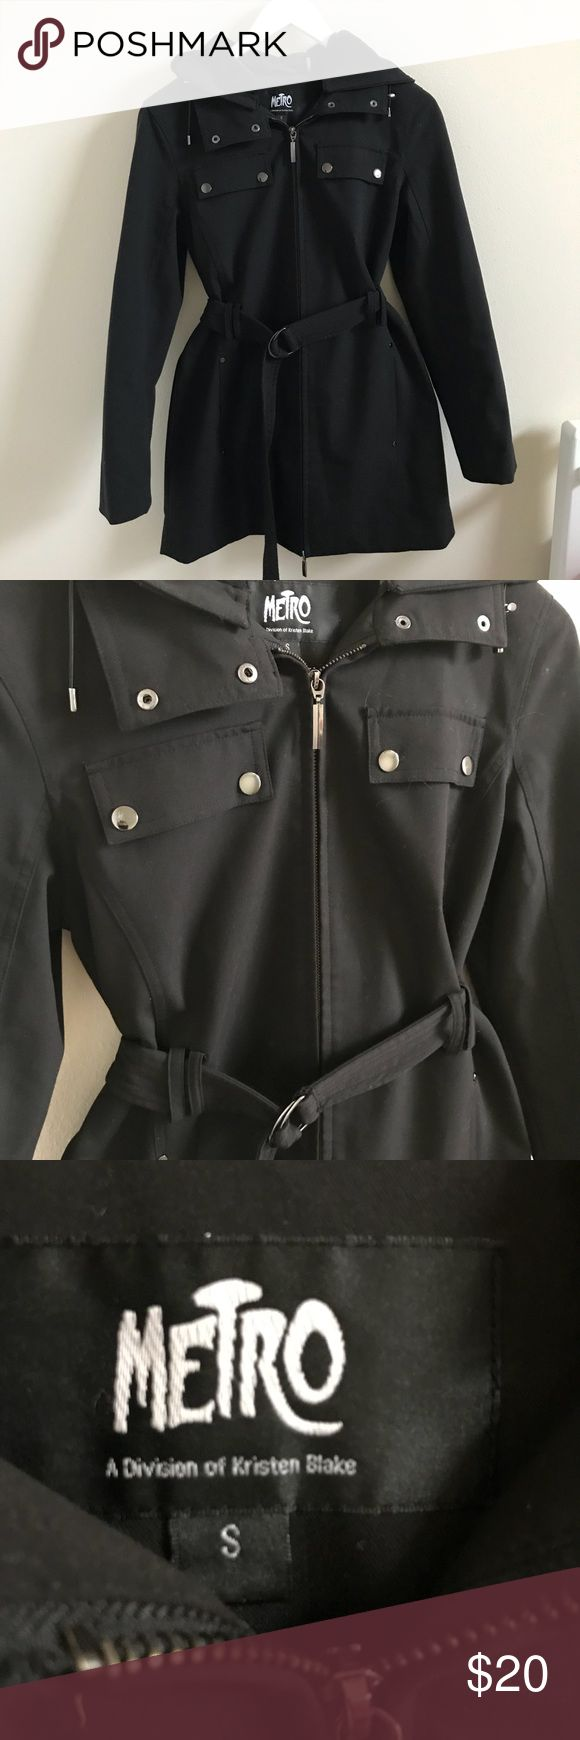 Black Rain Jacket Super nice and perfect weight rain jacket. Has a liner and fuzzy hood so great if you need a little more warmth than a regular rain jacket! Belt comes with and makes it 10x cuter! Comes from a smoke free home. Jackets & Coats Trench Coats